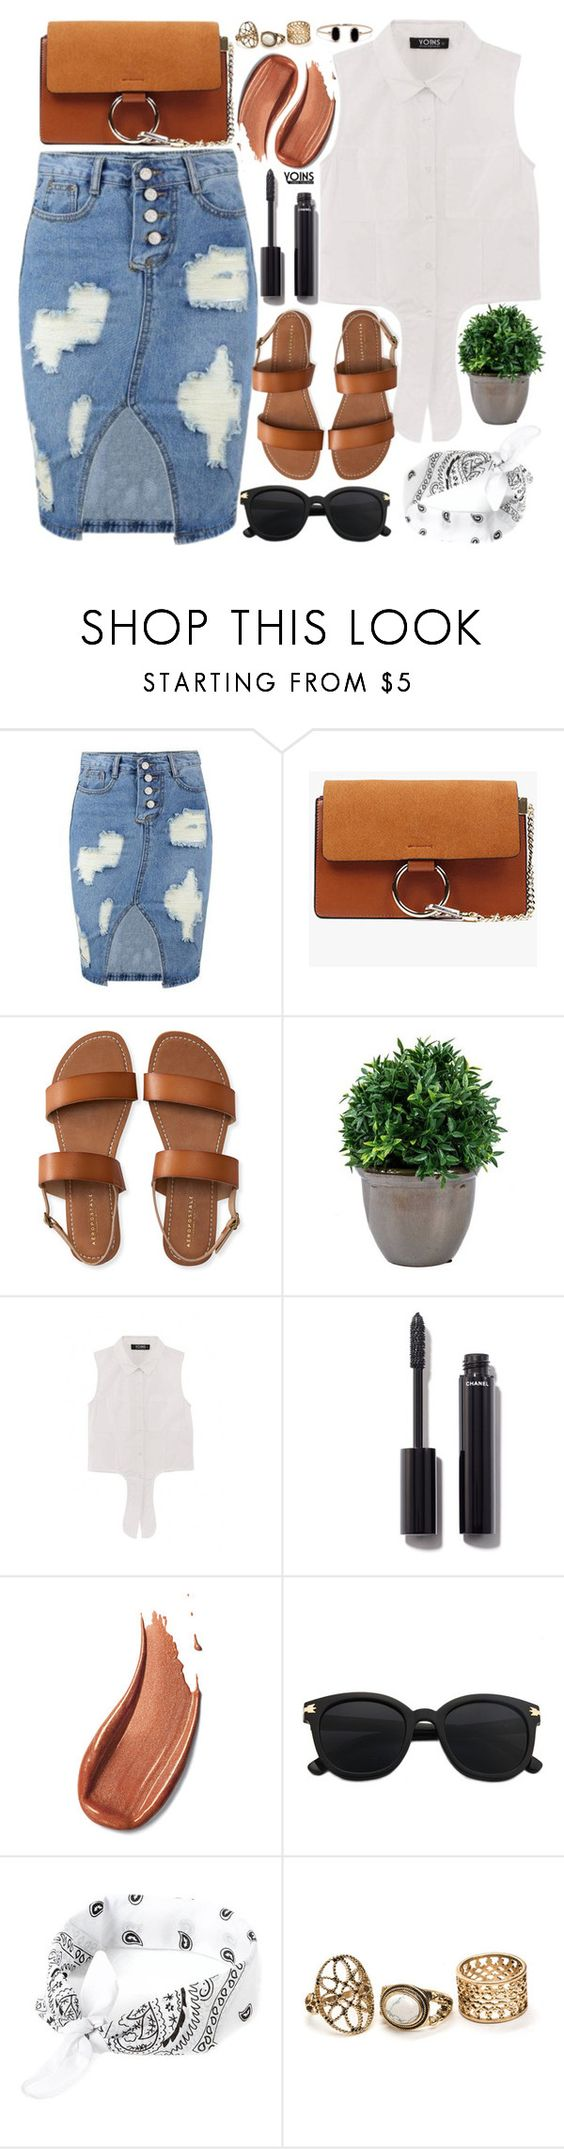 """Summer Wishlist"" by vanjazivadinovic ❤ liked on Polyvore featuring Aéropostale, Chanel, Lulu*s, polyvoreeditorial, Poyvore, yoins, yoinscollection and loveyoins"